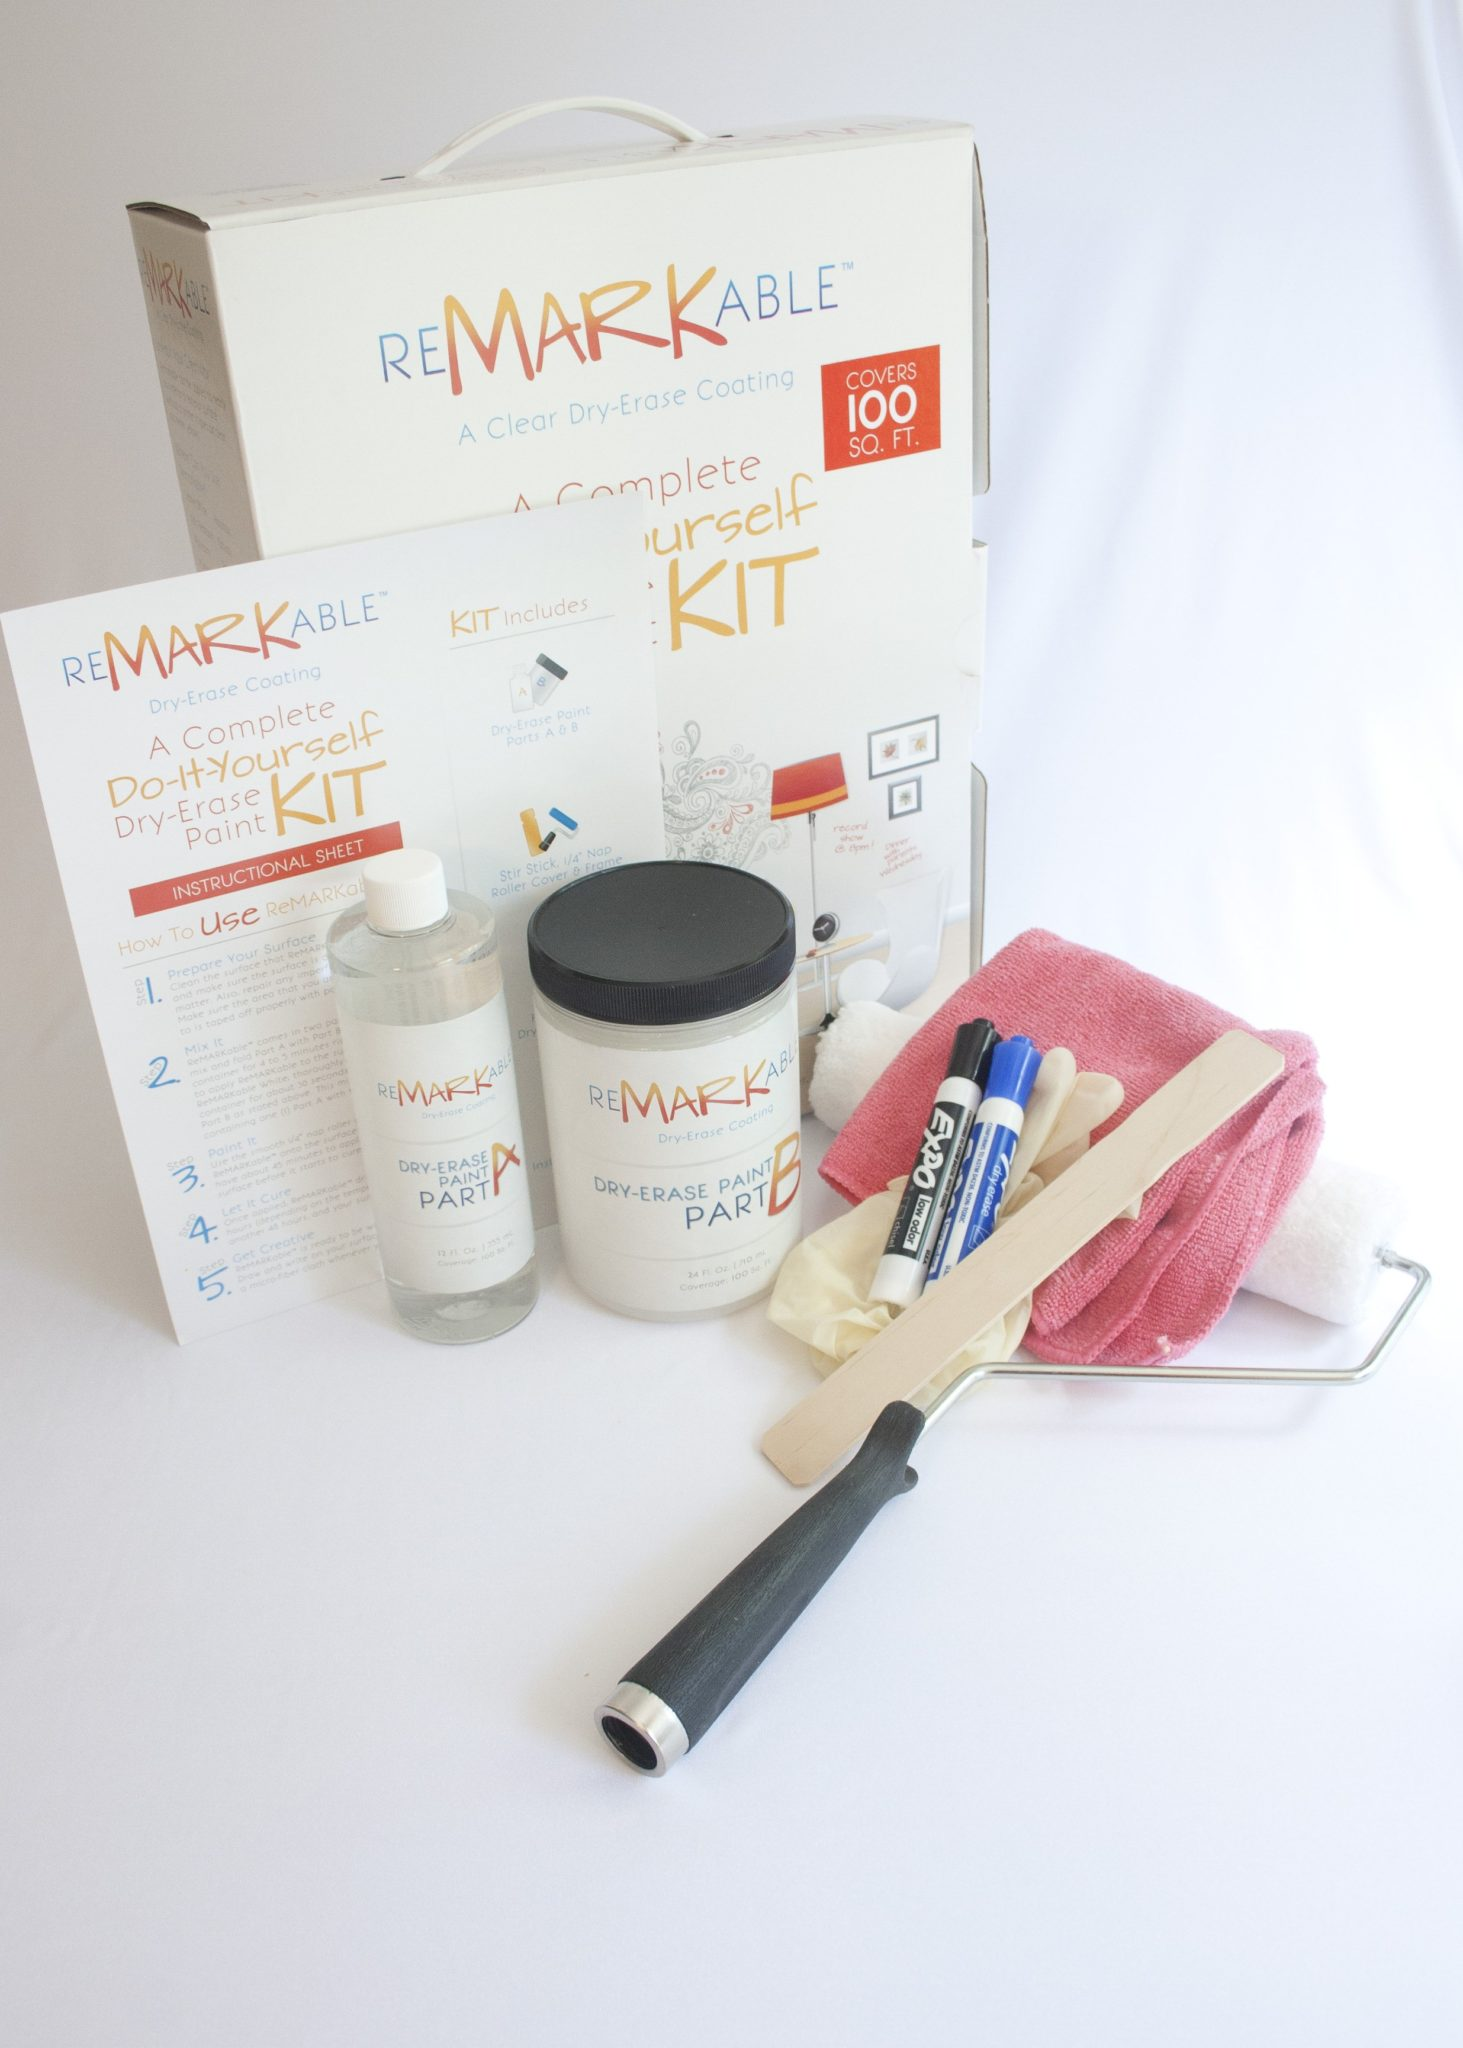 Turn A Wall Into A Whiteboard Clear 100 Square Foot Kit